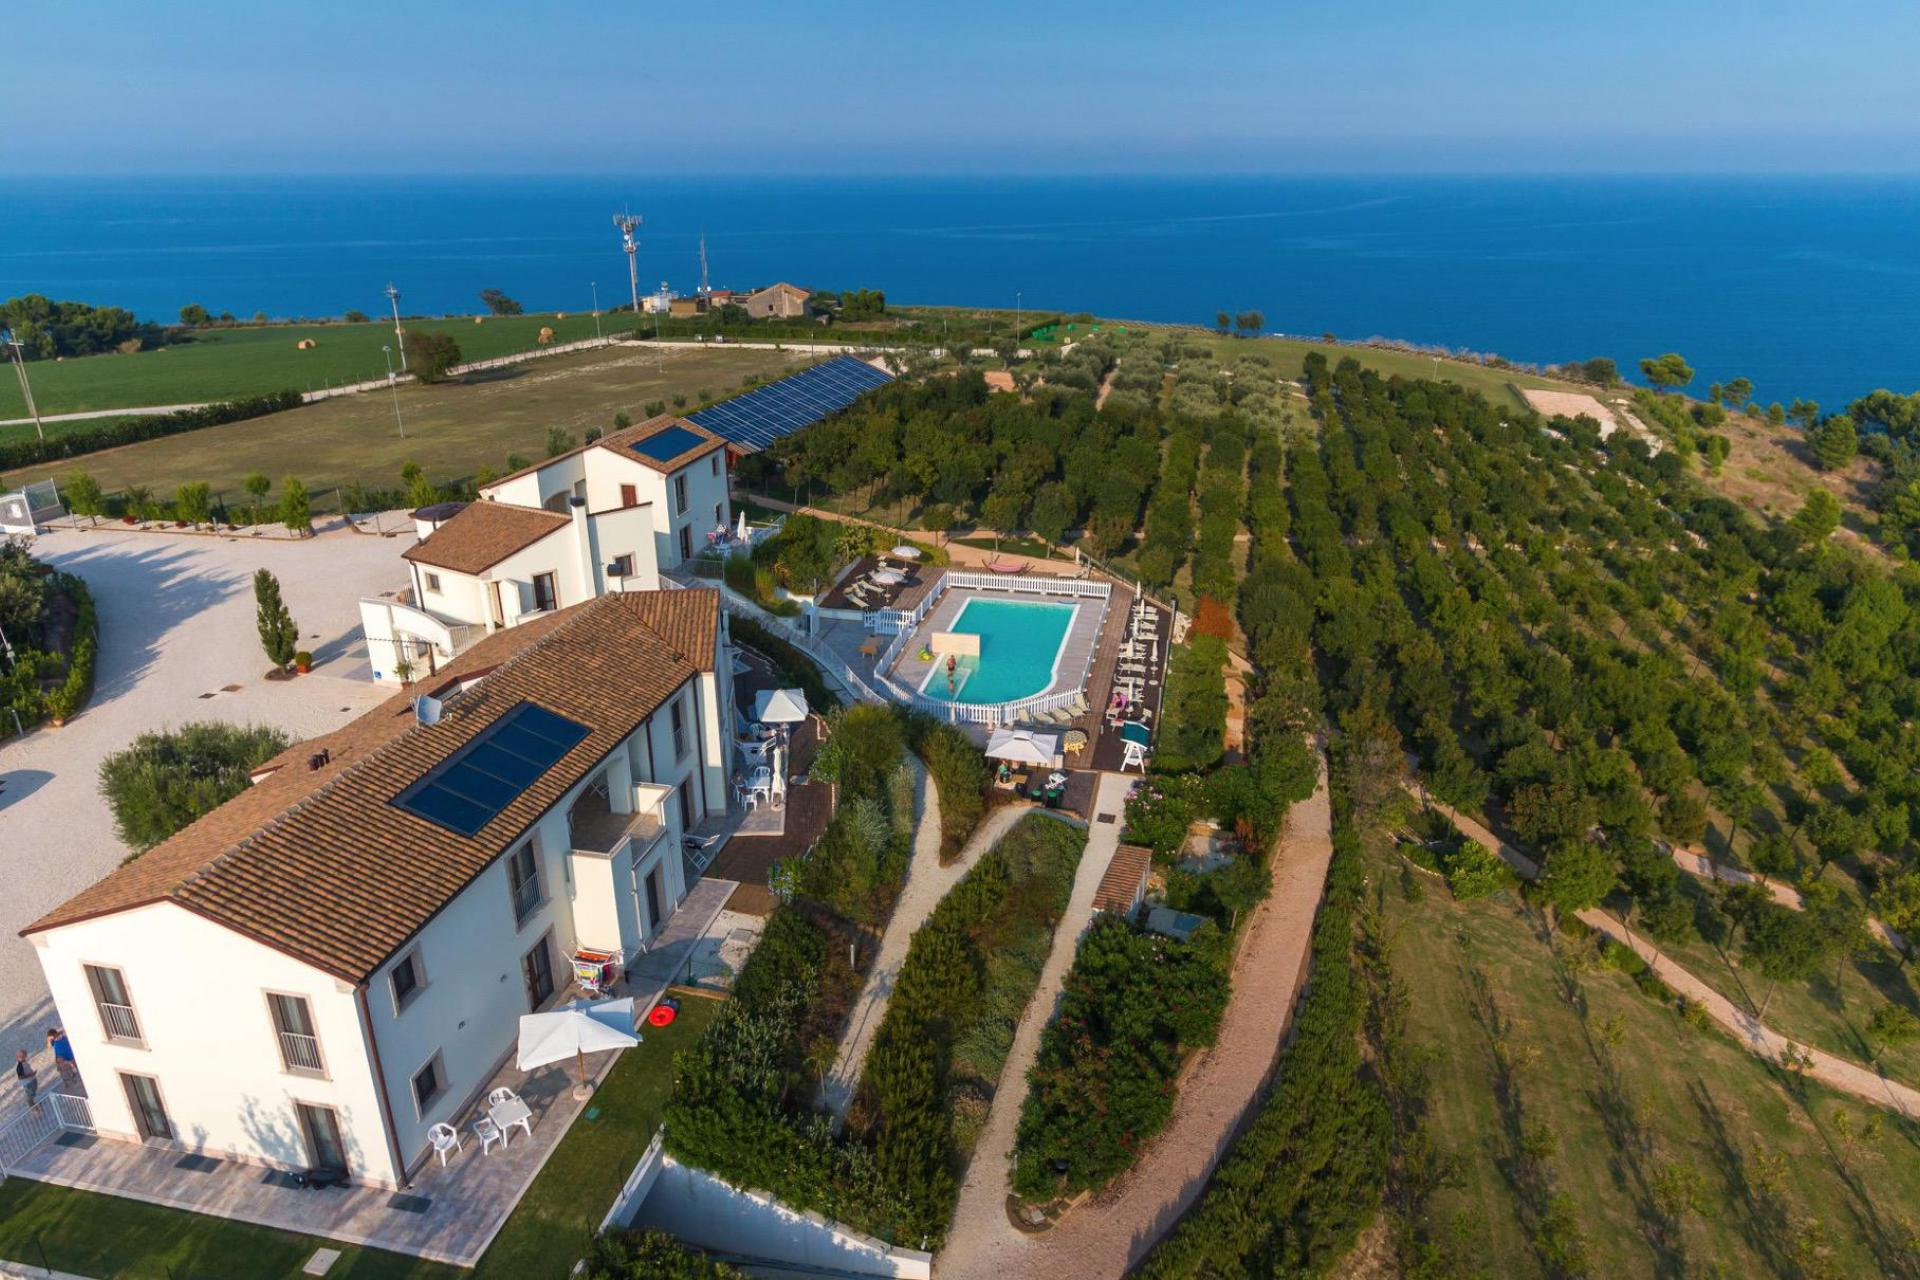 Agriturismo Marche Child-friendly agriturismo Marche with sea view